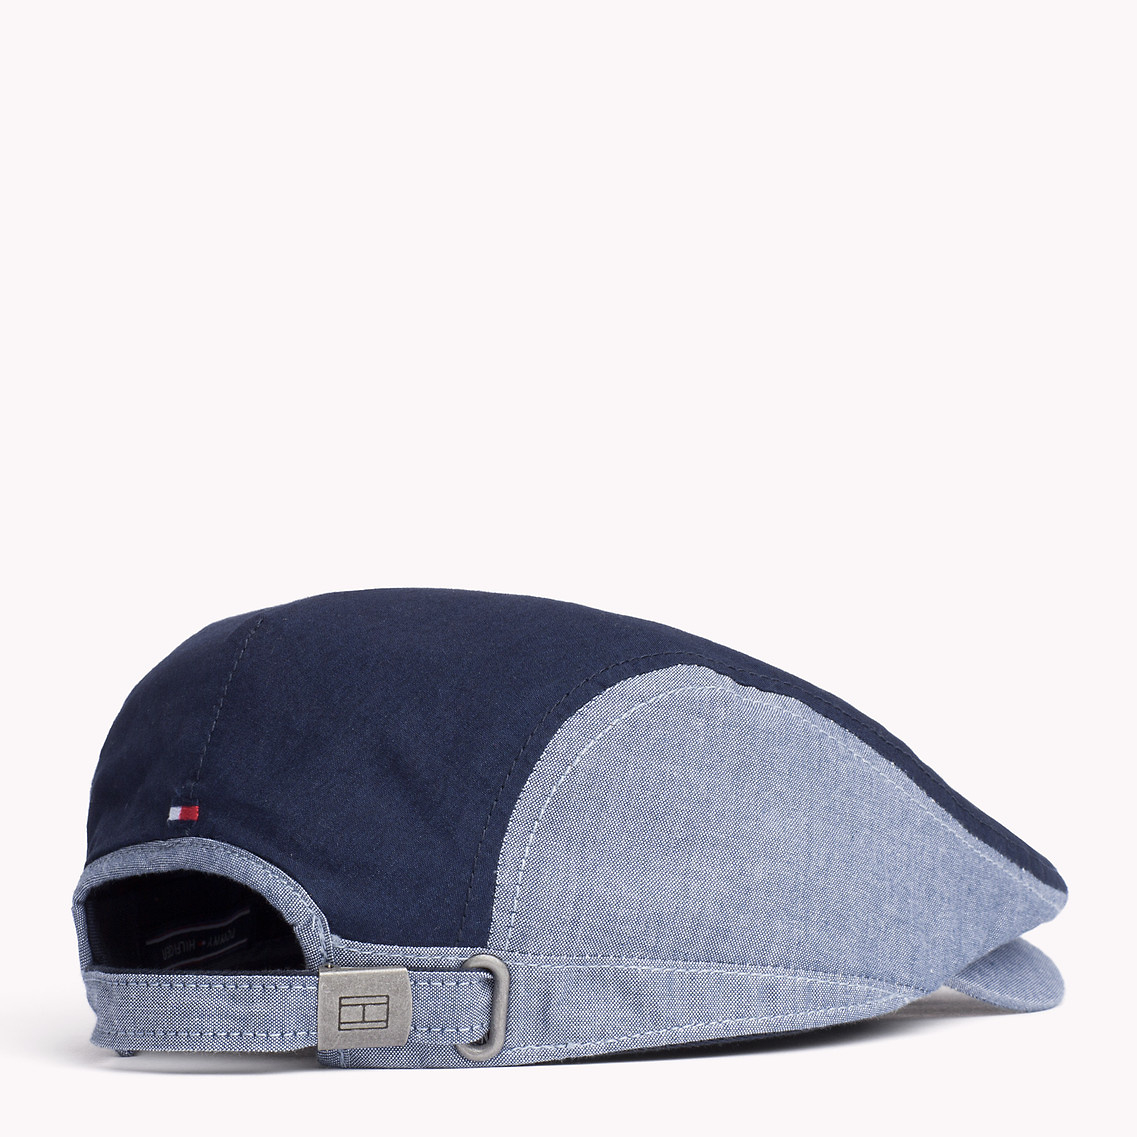 Tommy Hilfiger Damian Flat Cap in Blue for Men - Lyst 85a11447cd5